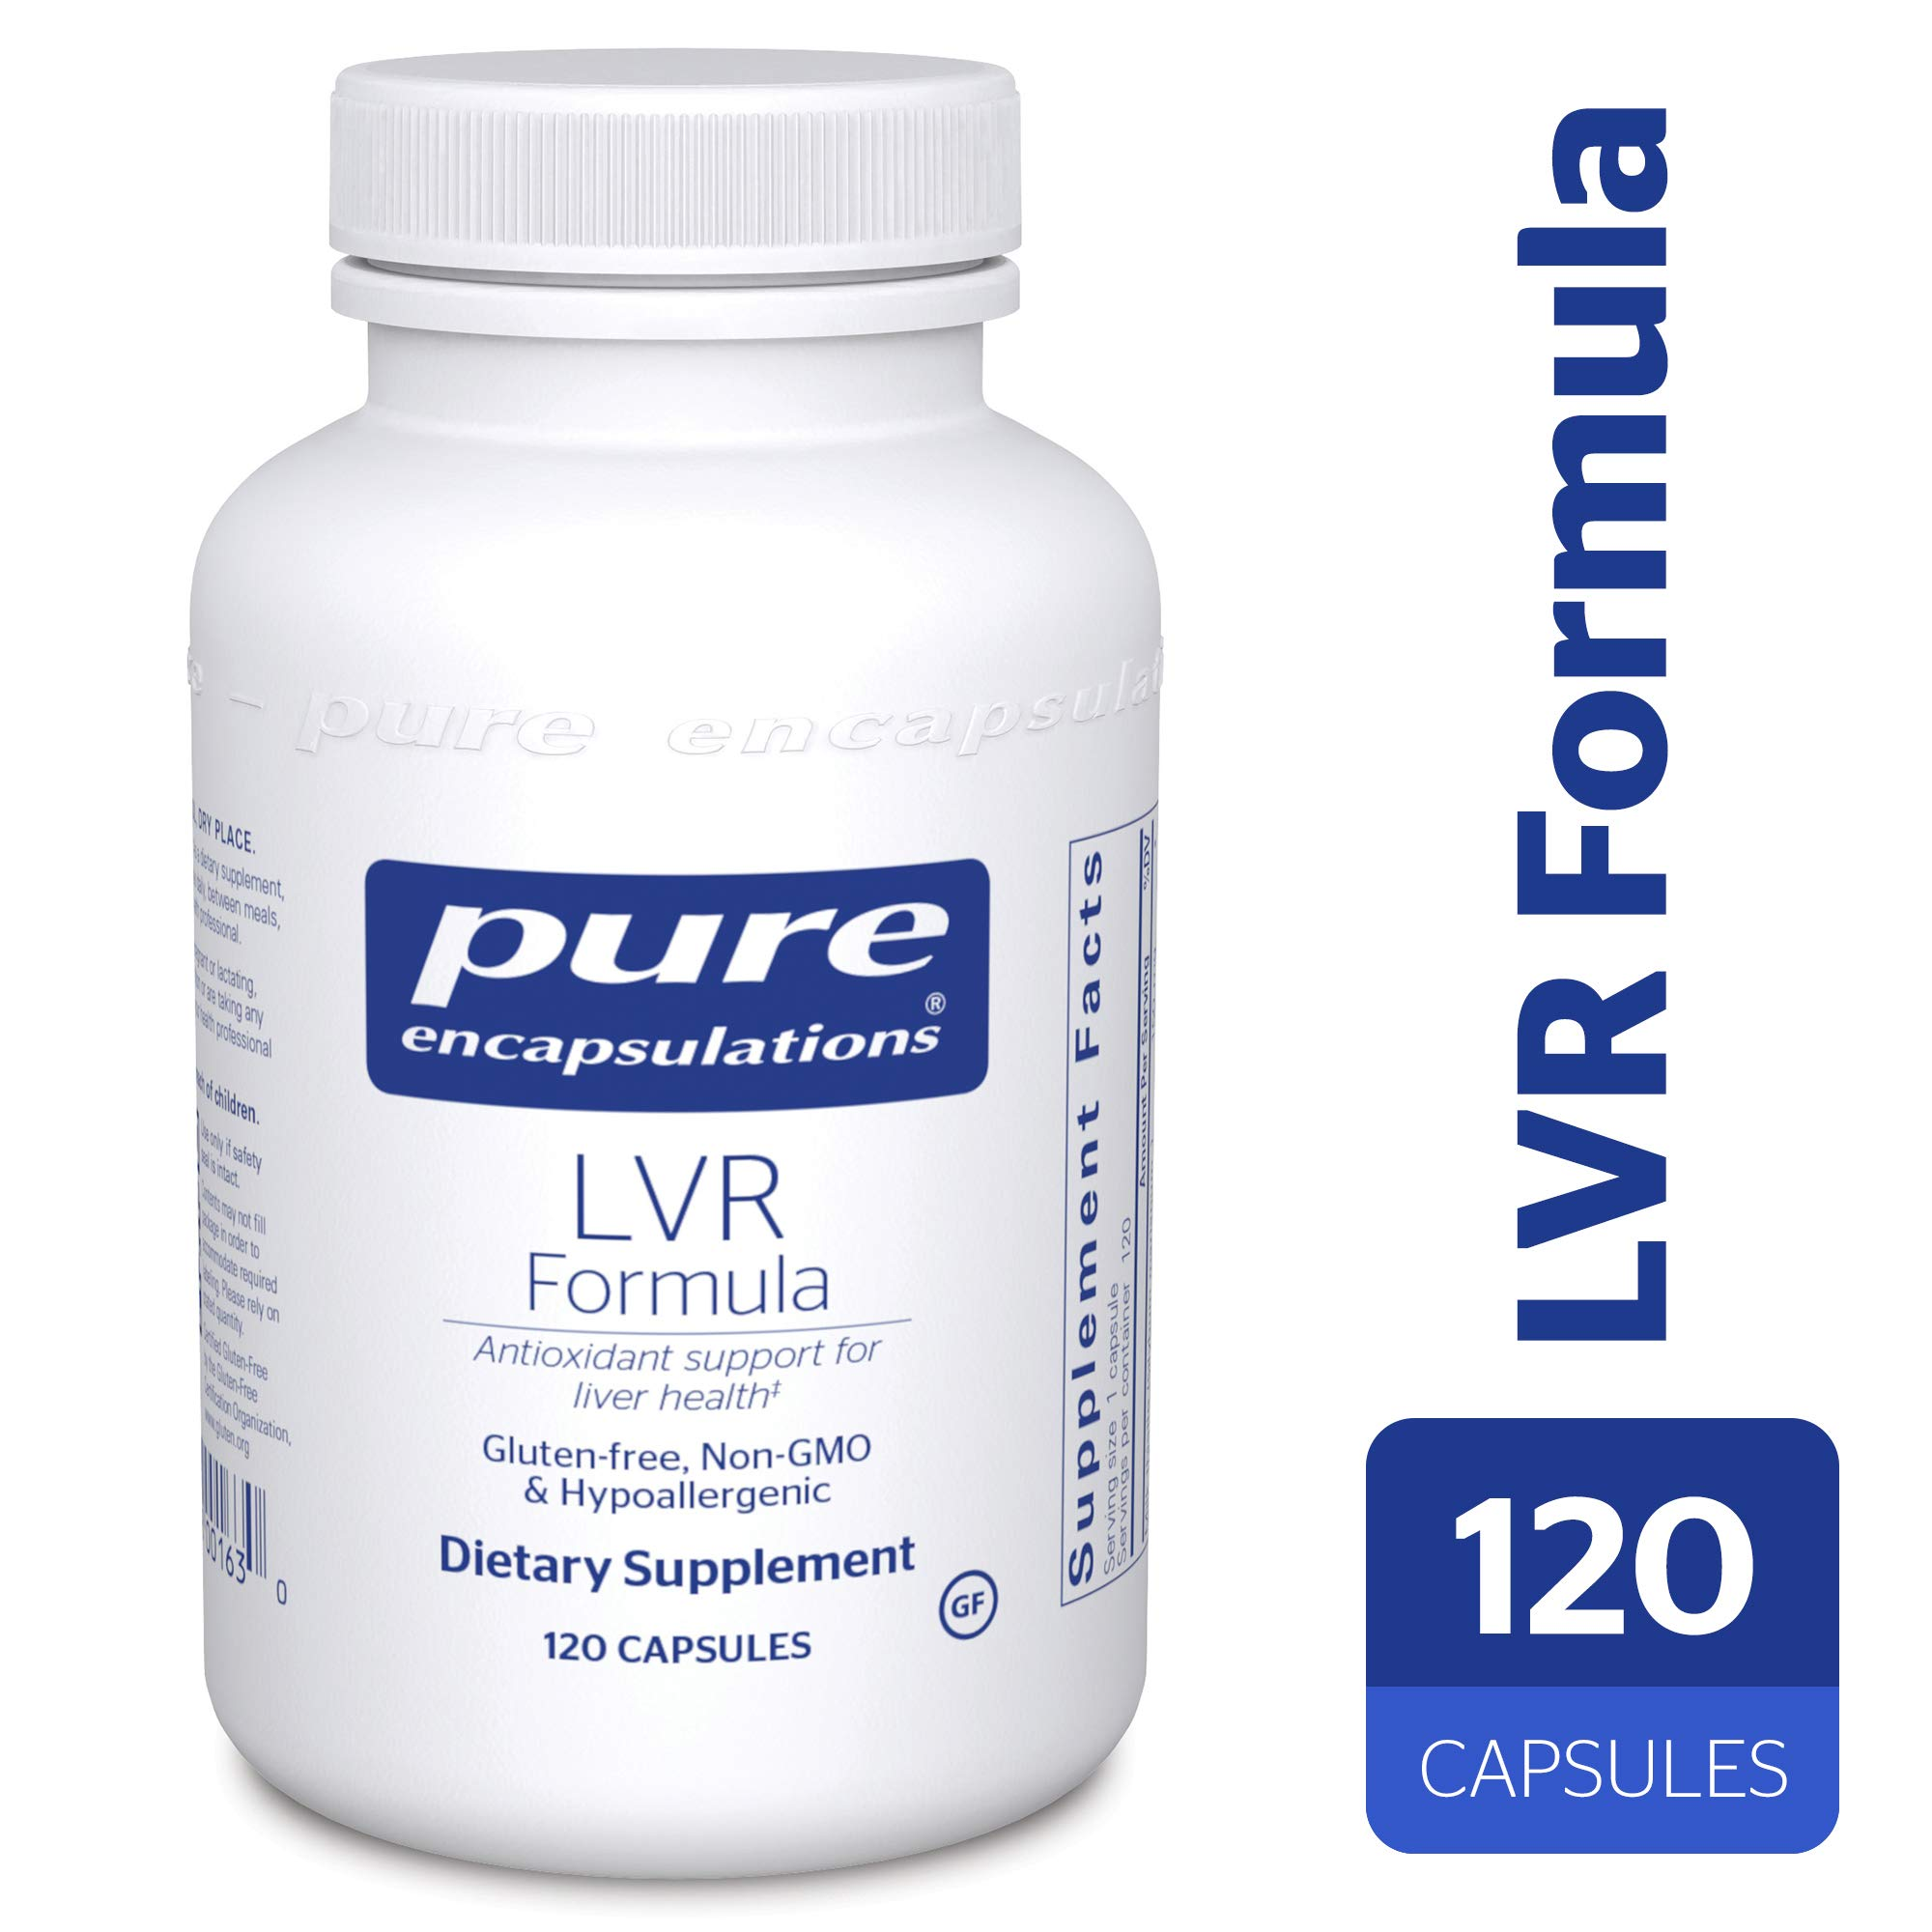 Pure Encapsulations - LVR Formula - Hypoallergenic Supplement with Antioxidant Support for Liver Cell Health* - 120 Capsules by Pure Encapsulations